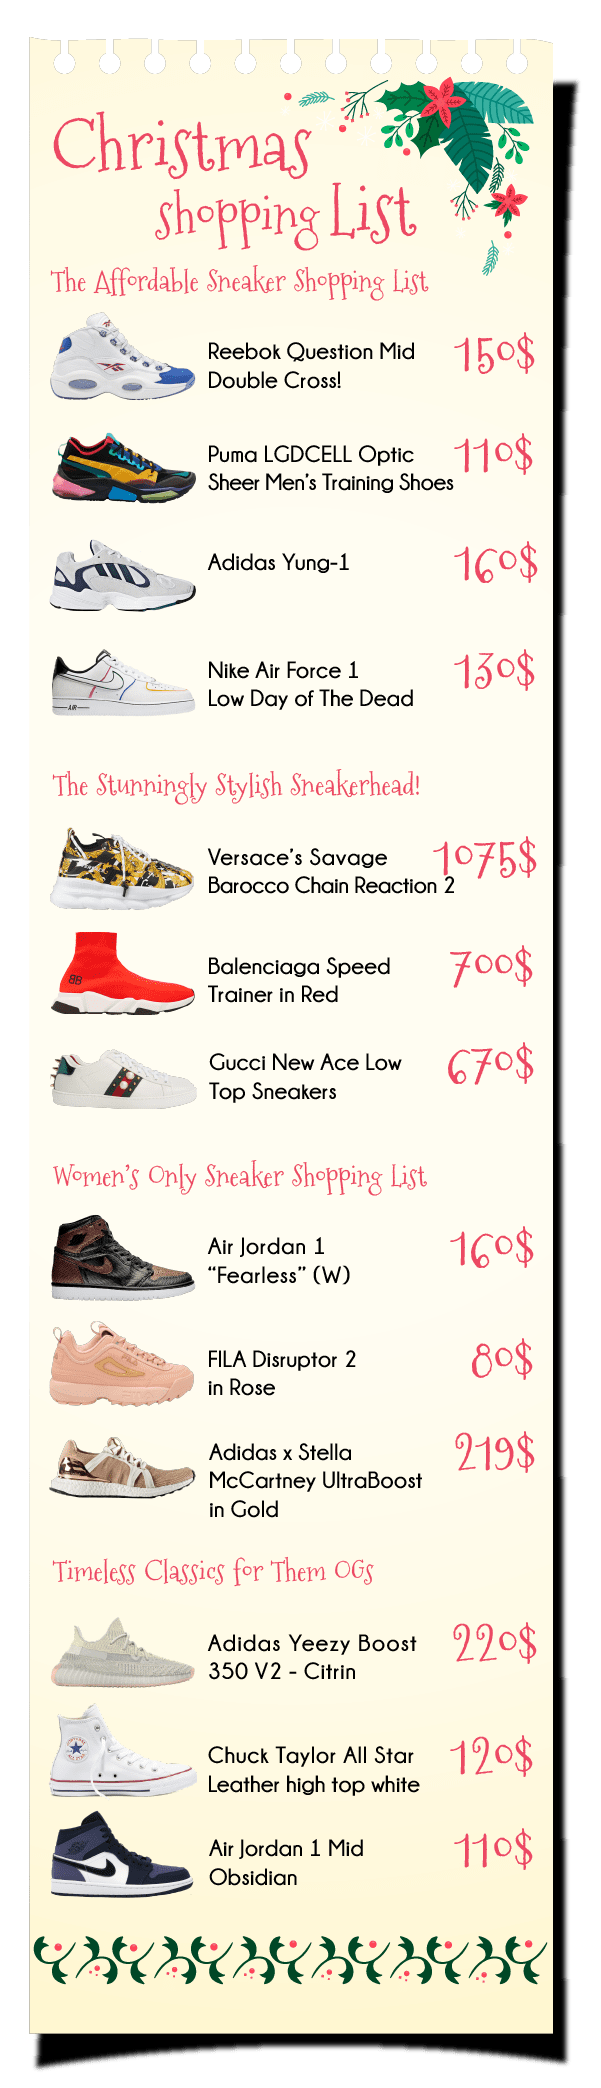 Holiday Sneaker shopping list